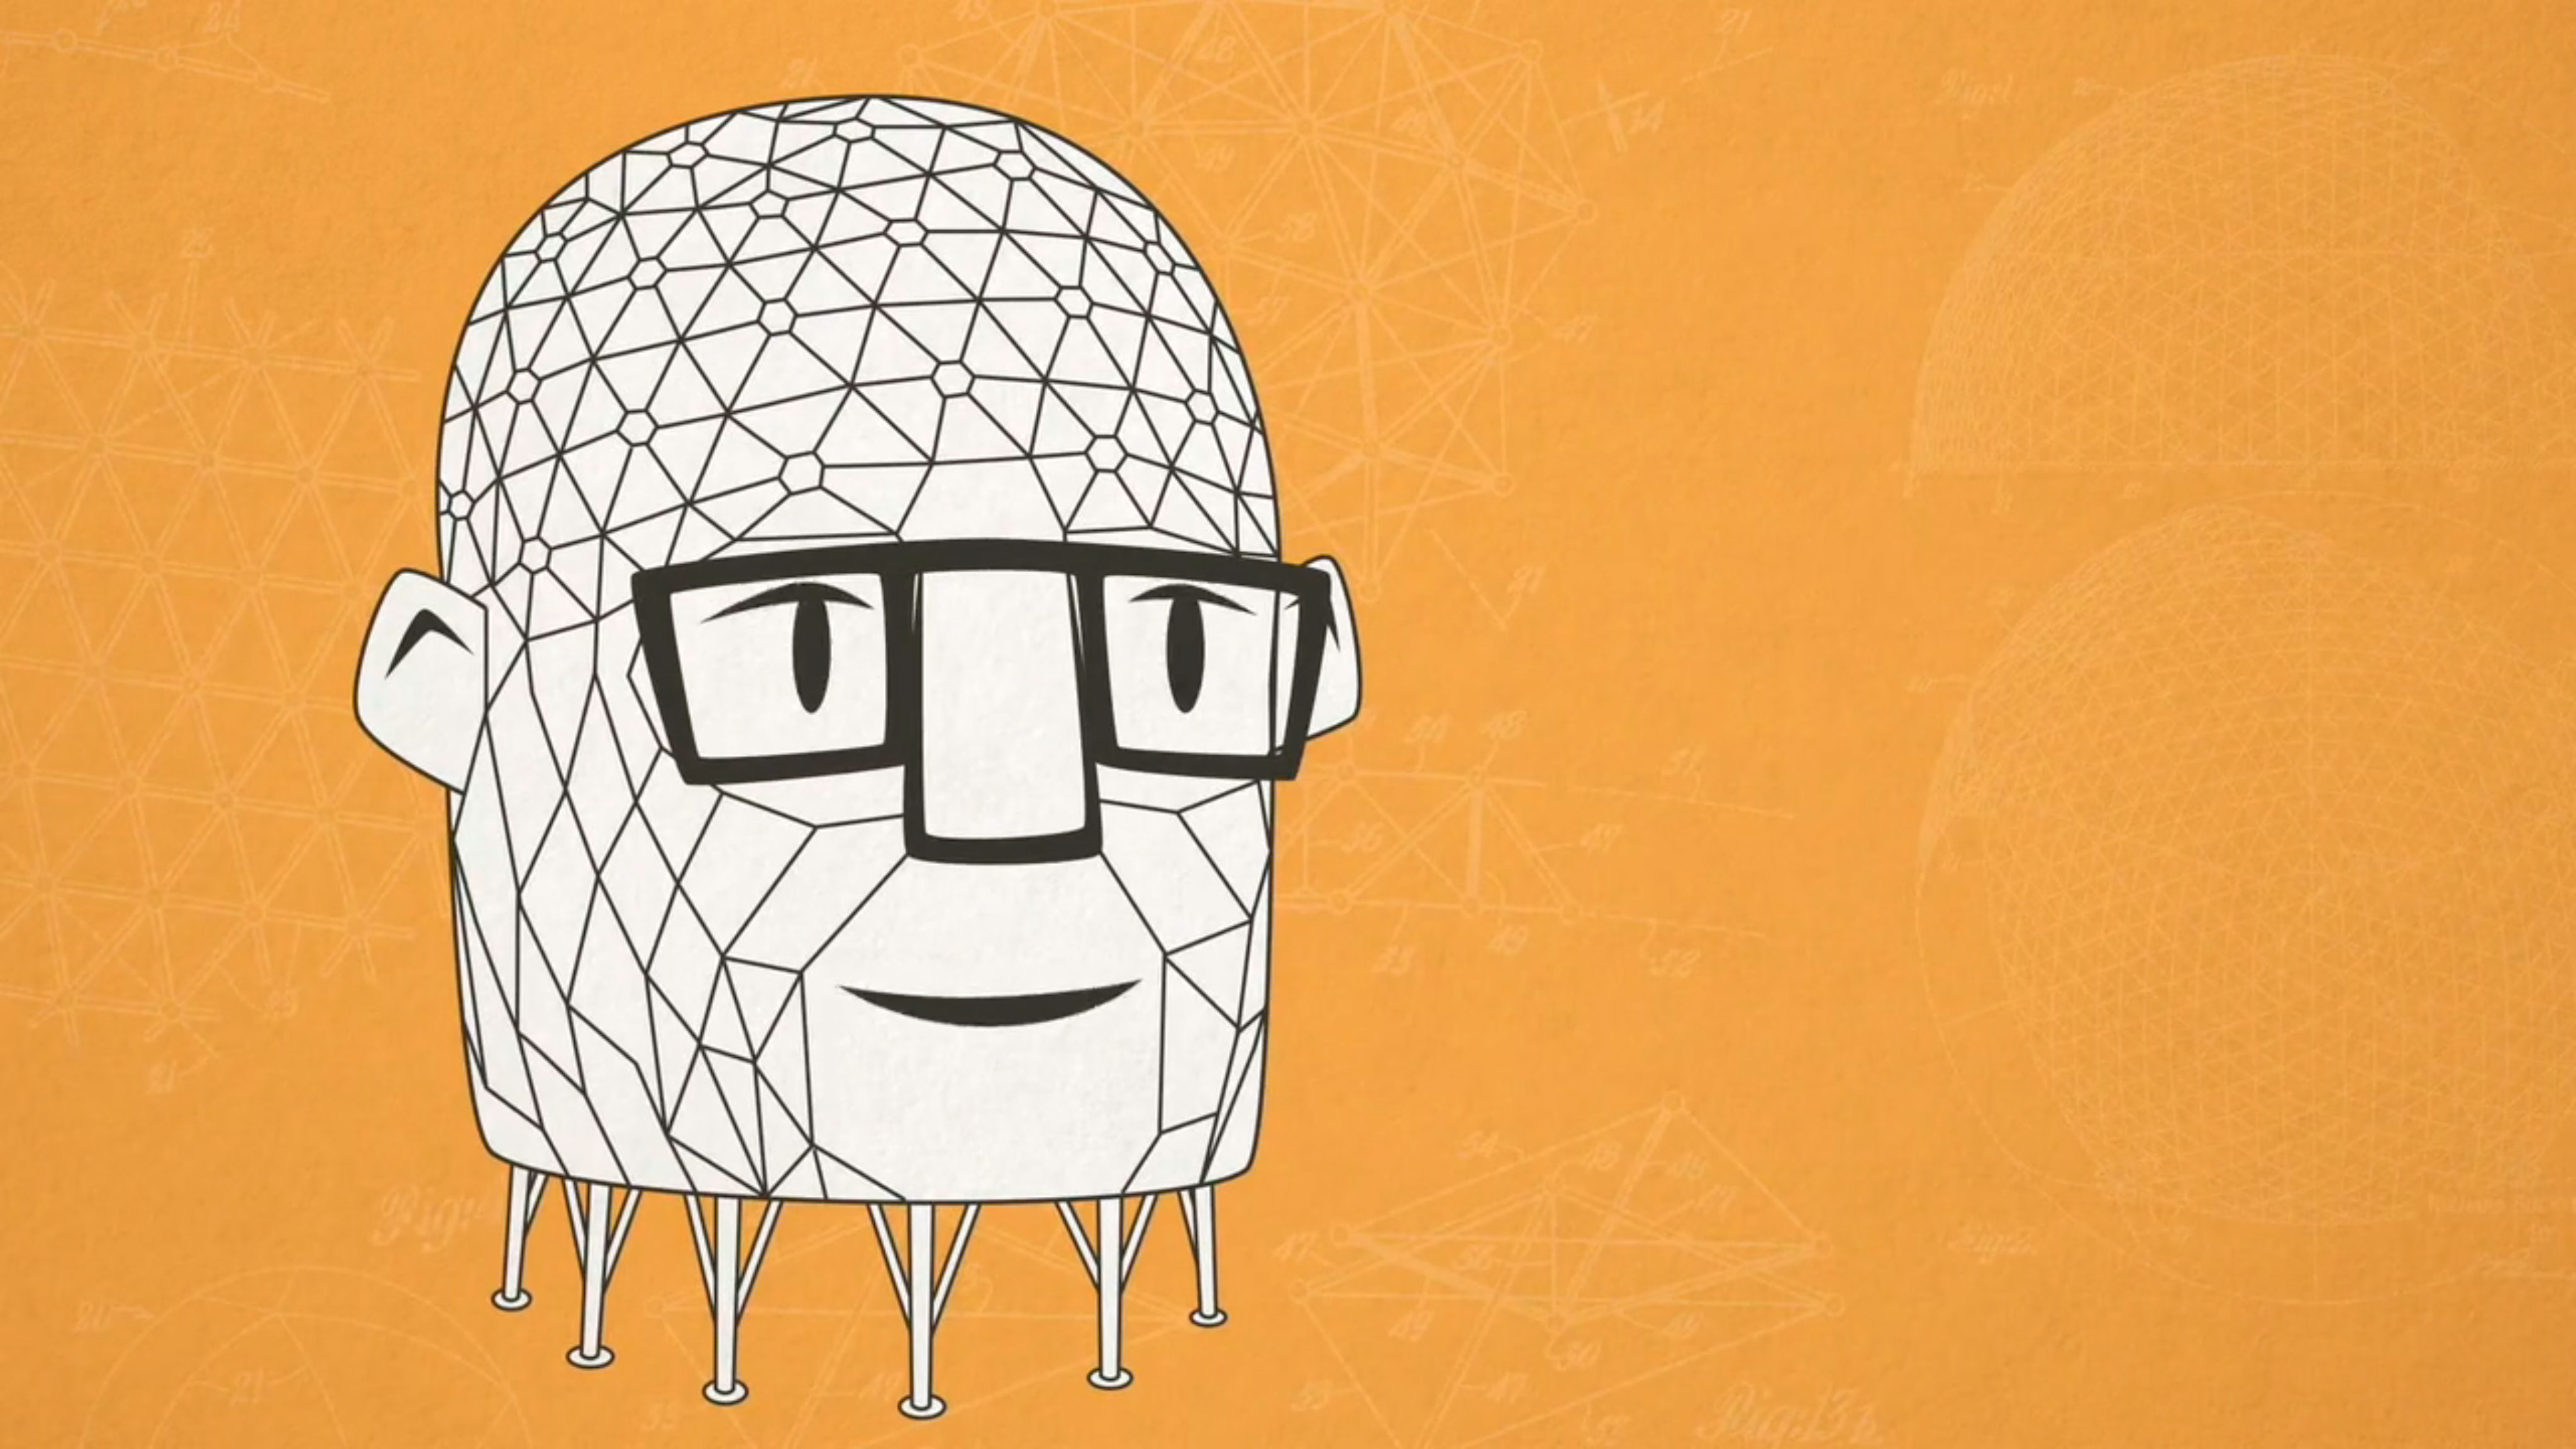 'Buckminster Fuller on The Geodesic Life' de Quoted Studios. Corte de vídeo